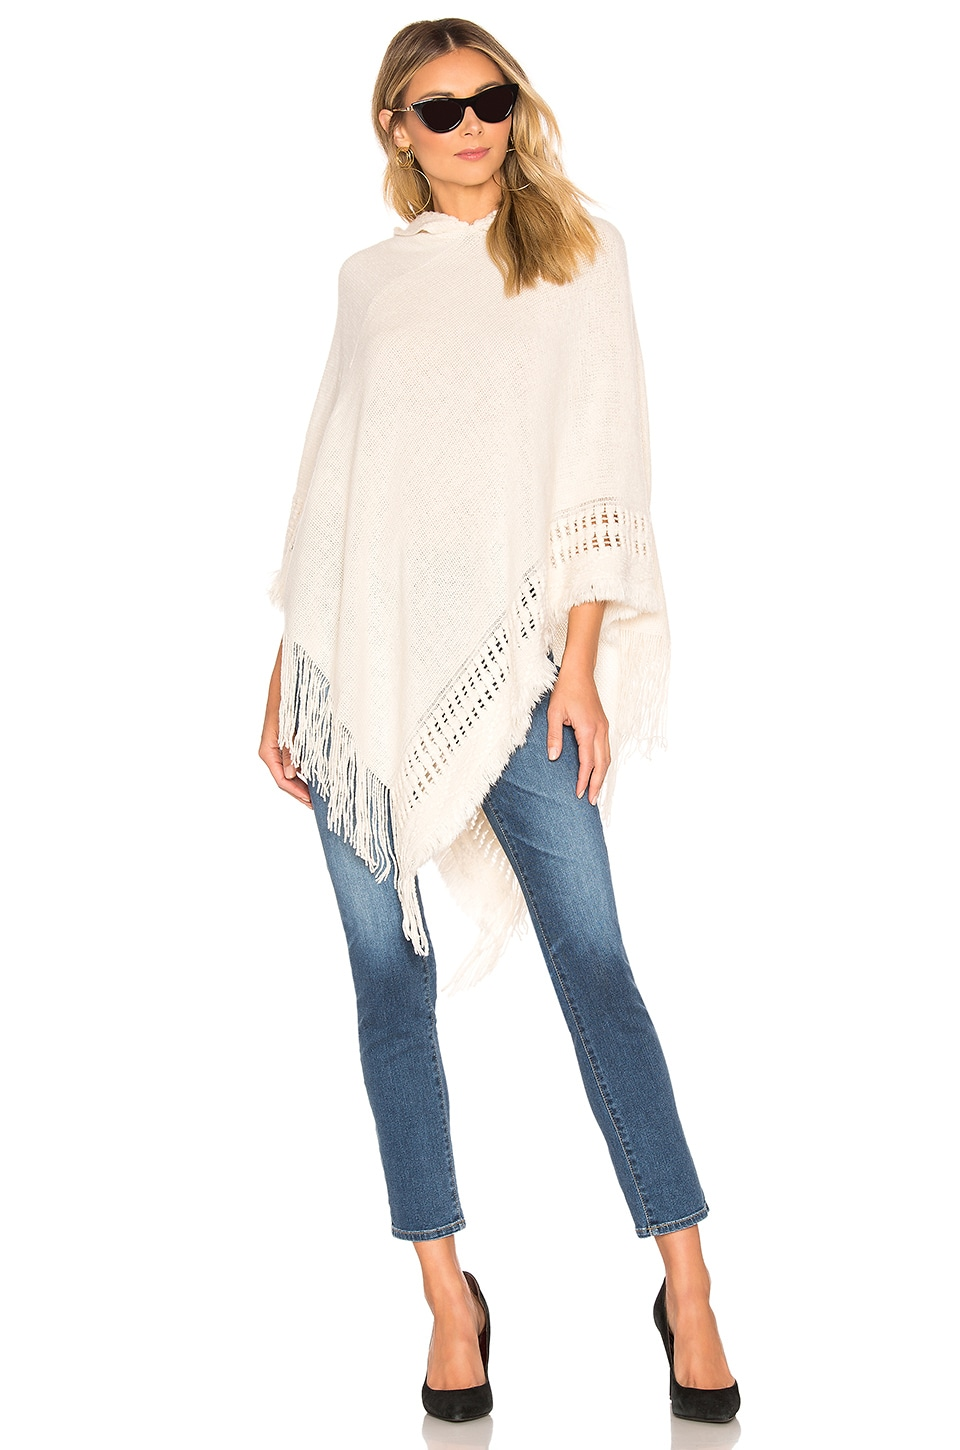 Tularosa Hooded Poncho in Cream